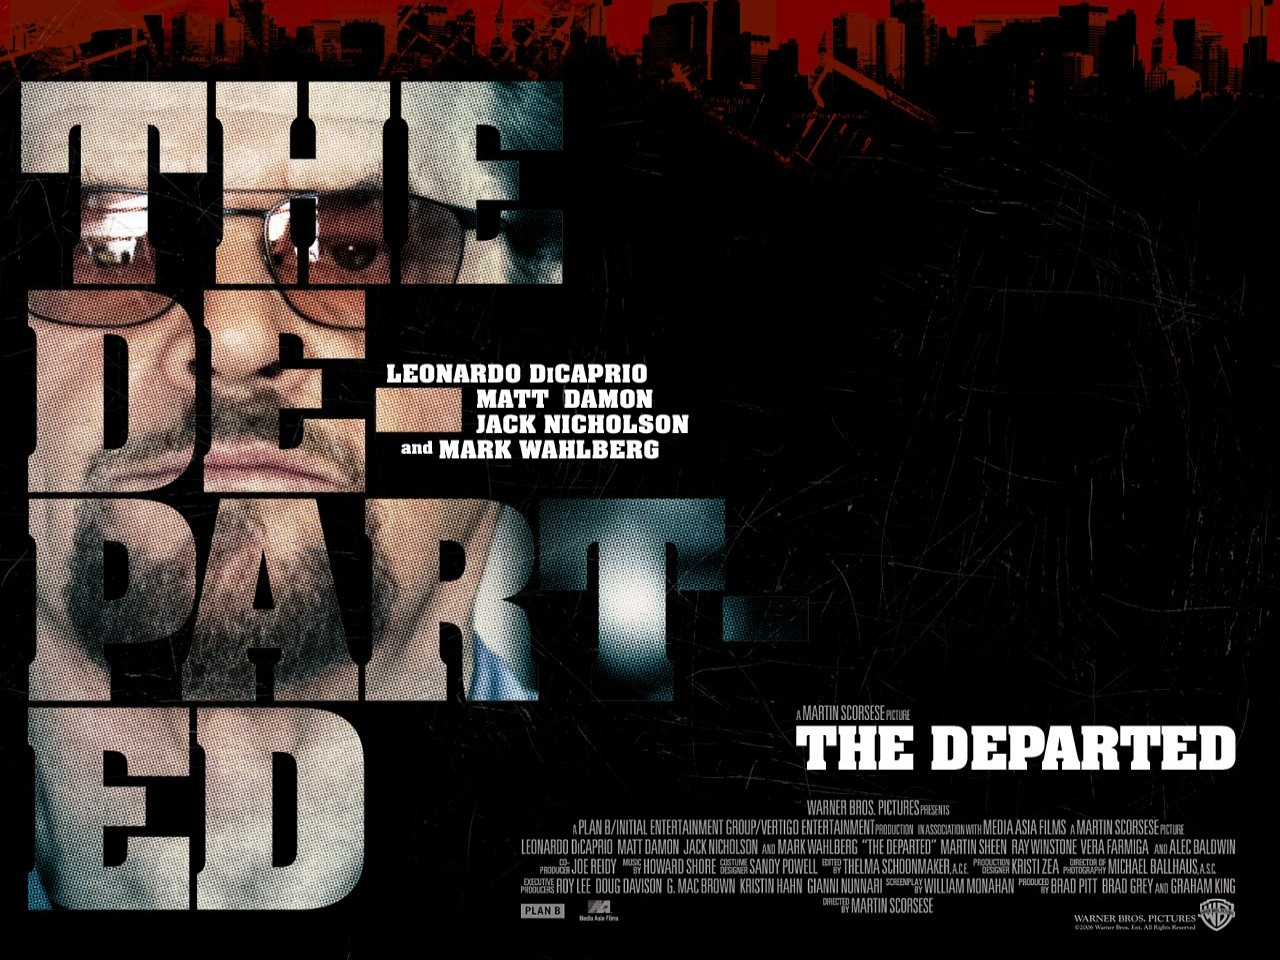 Wallpaper del film The Departed - Il bene e il male con Jack Nicholson